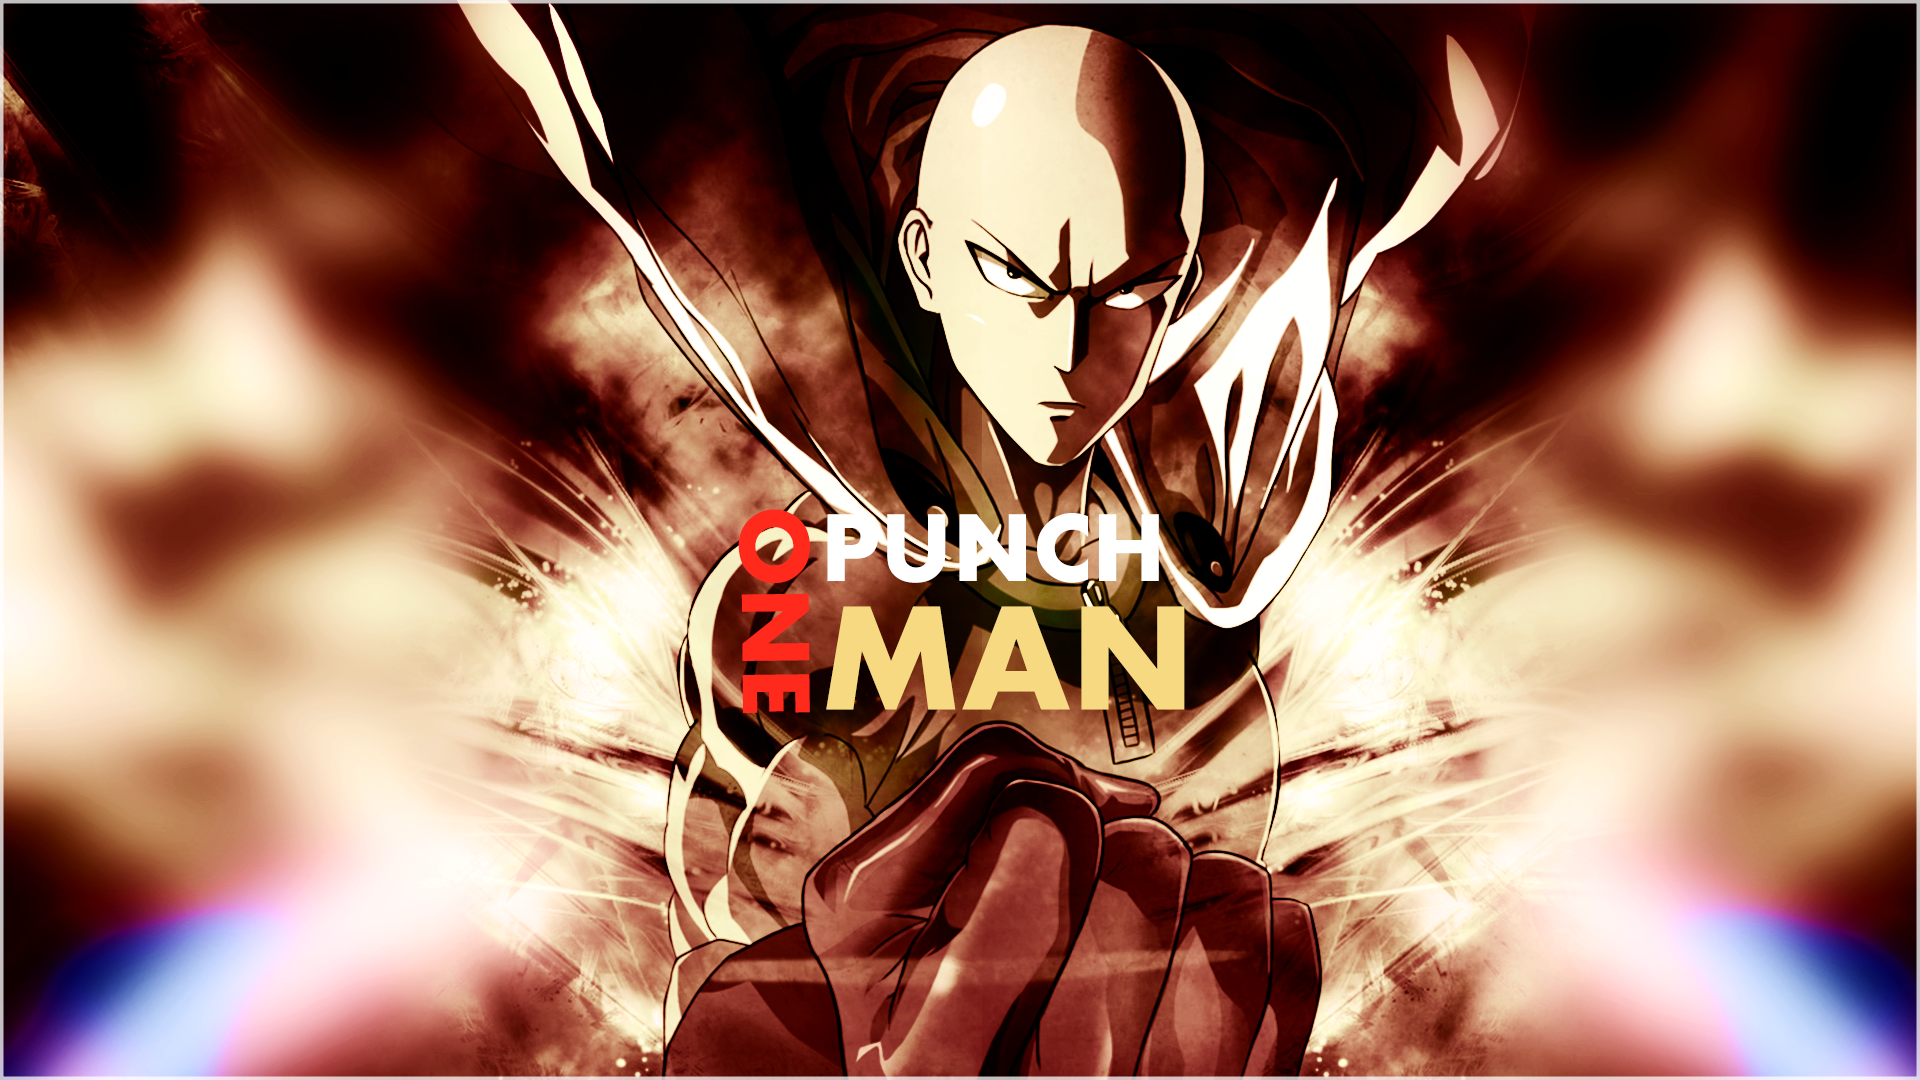 one punch man Full HD Wallpaper and Background Image | 1920x1080 | ID:665242